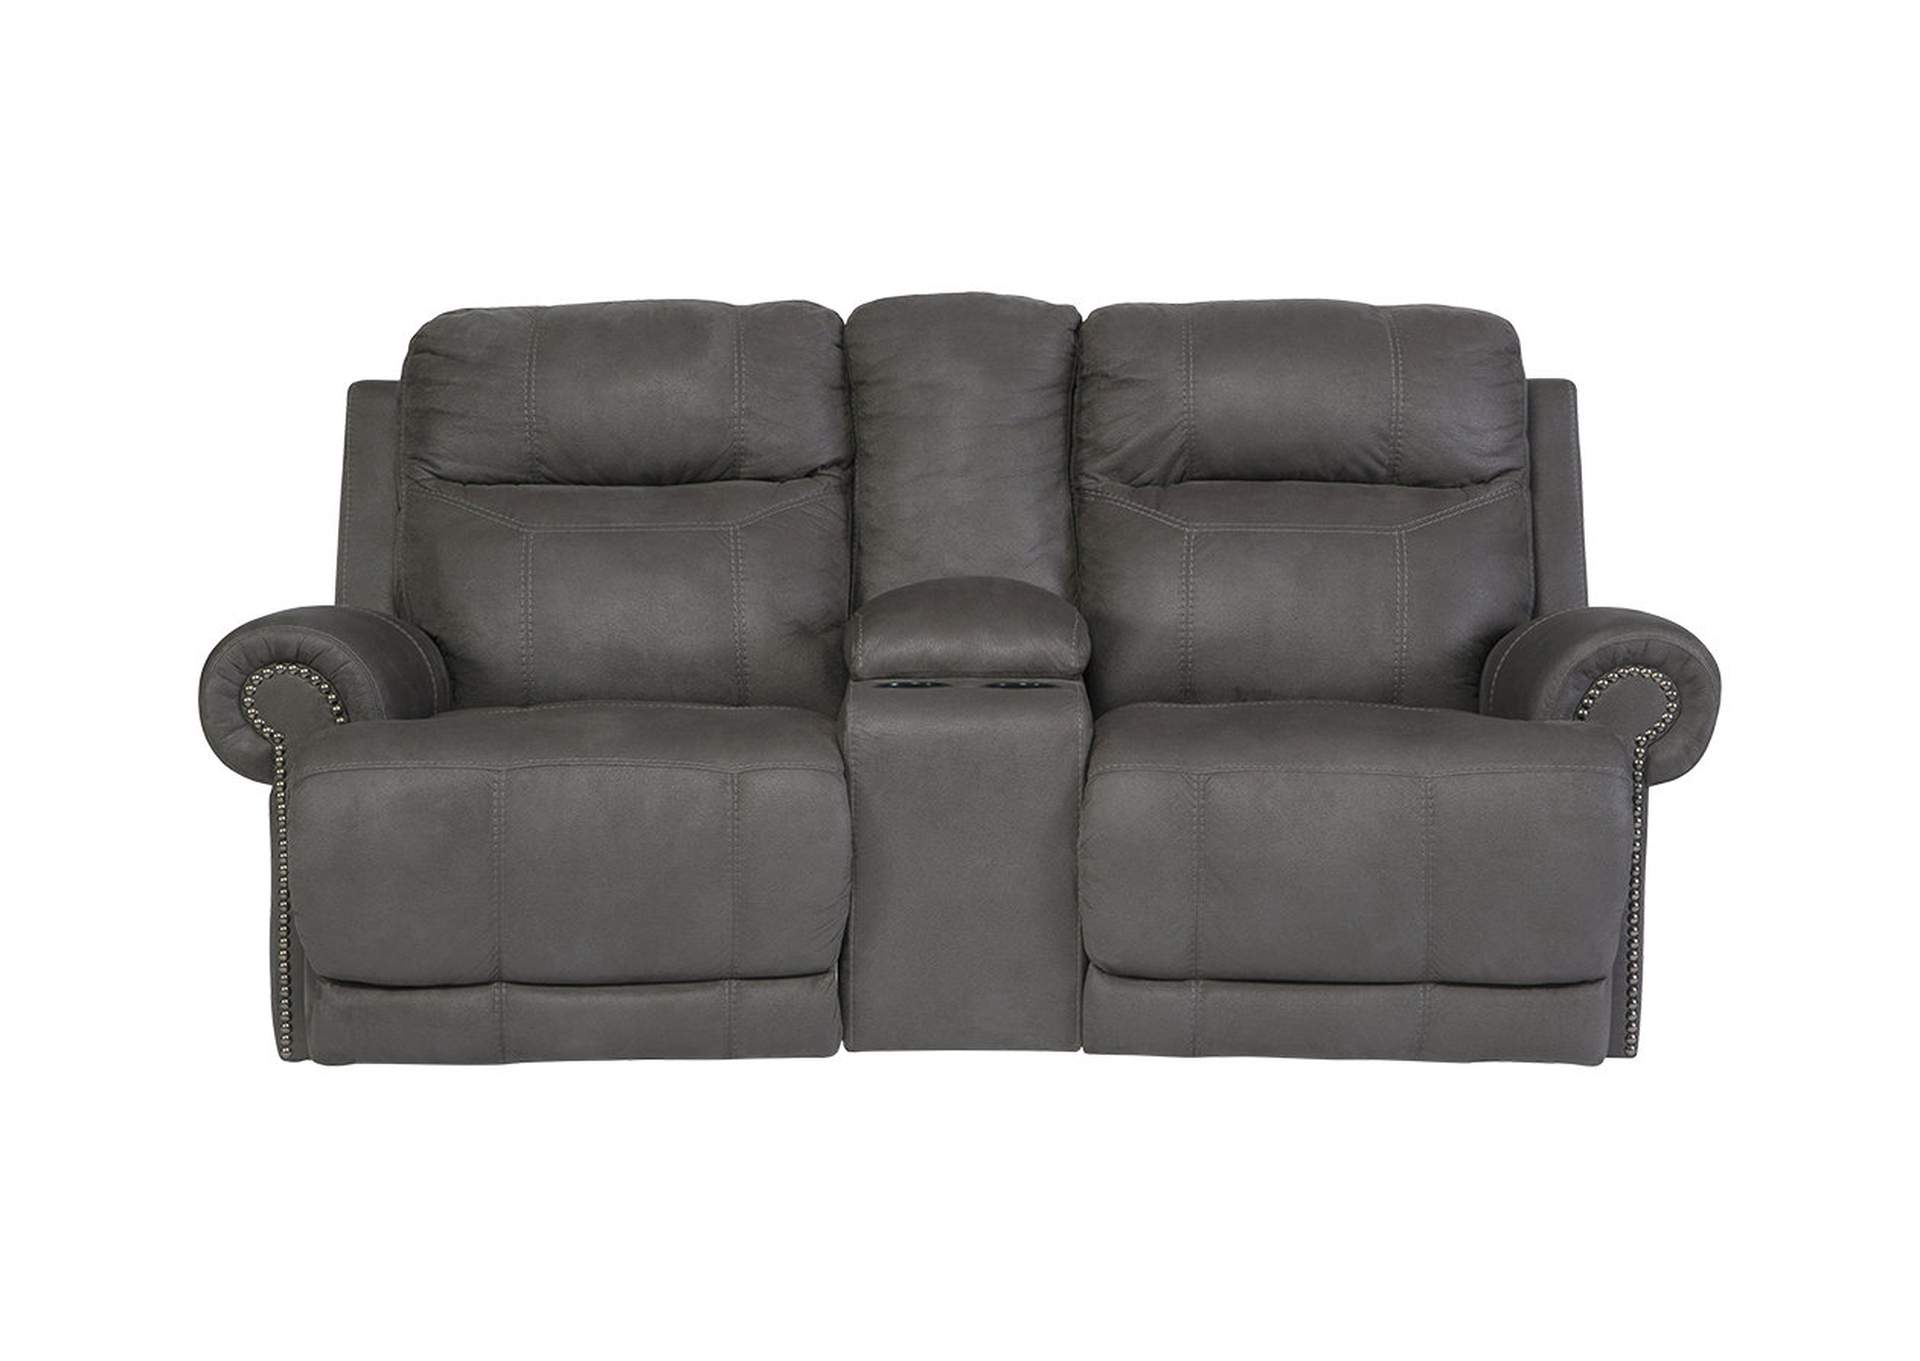 Austere Gray Double Reclining Power Loveseat w/ Console,Signature Design By Ashley